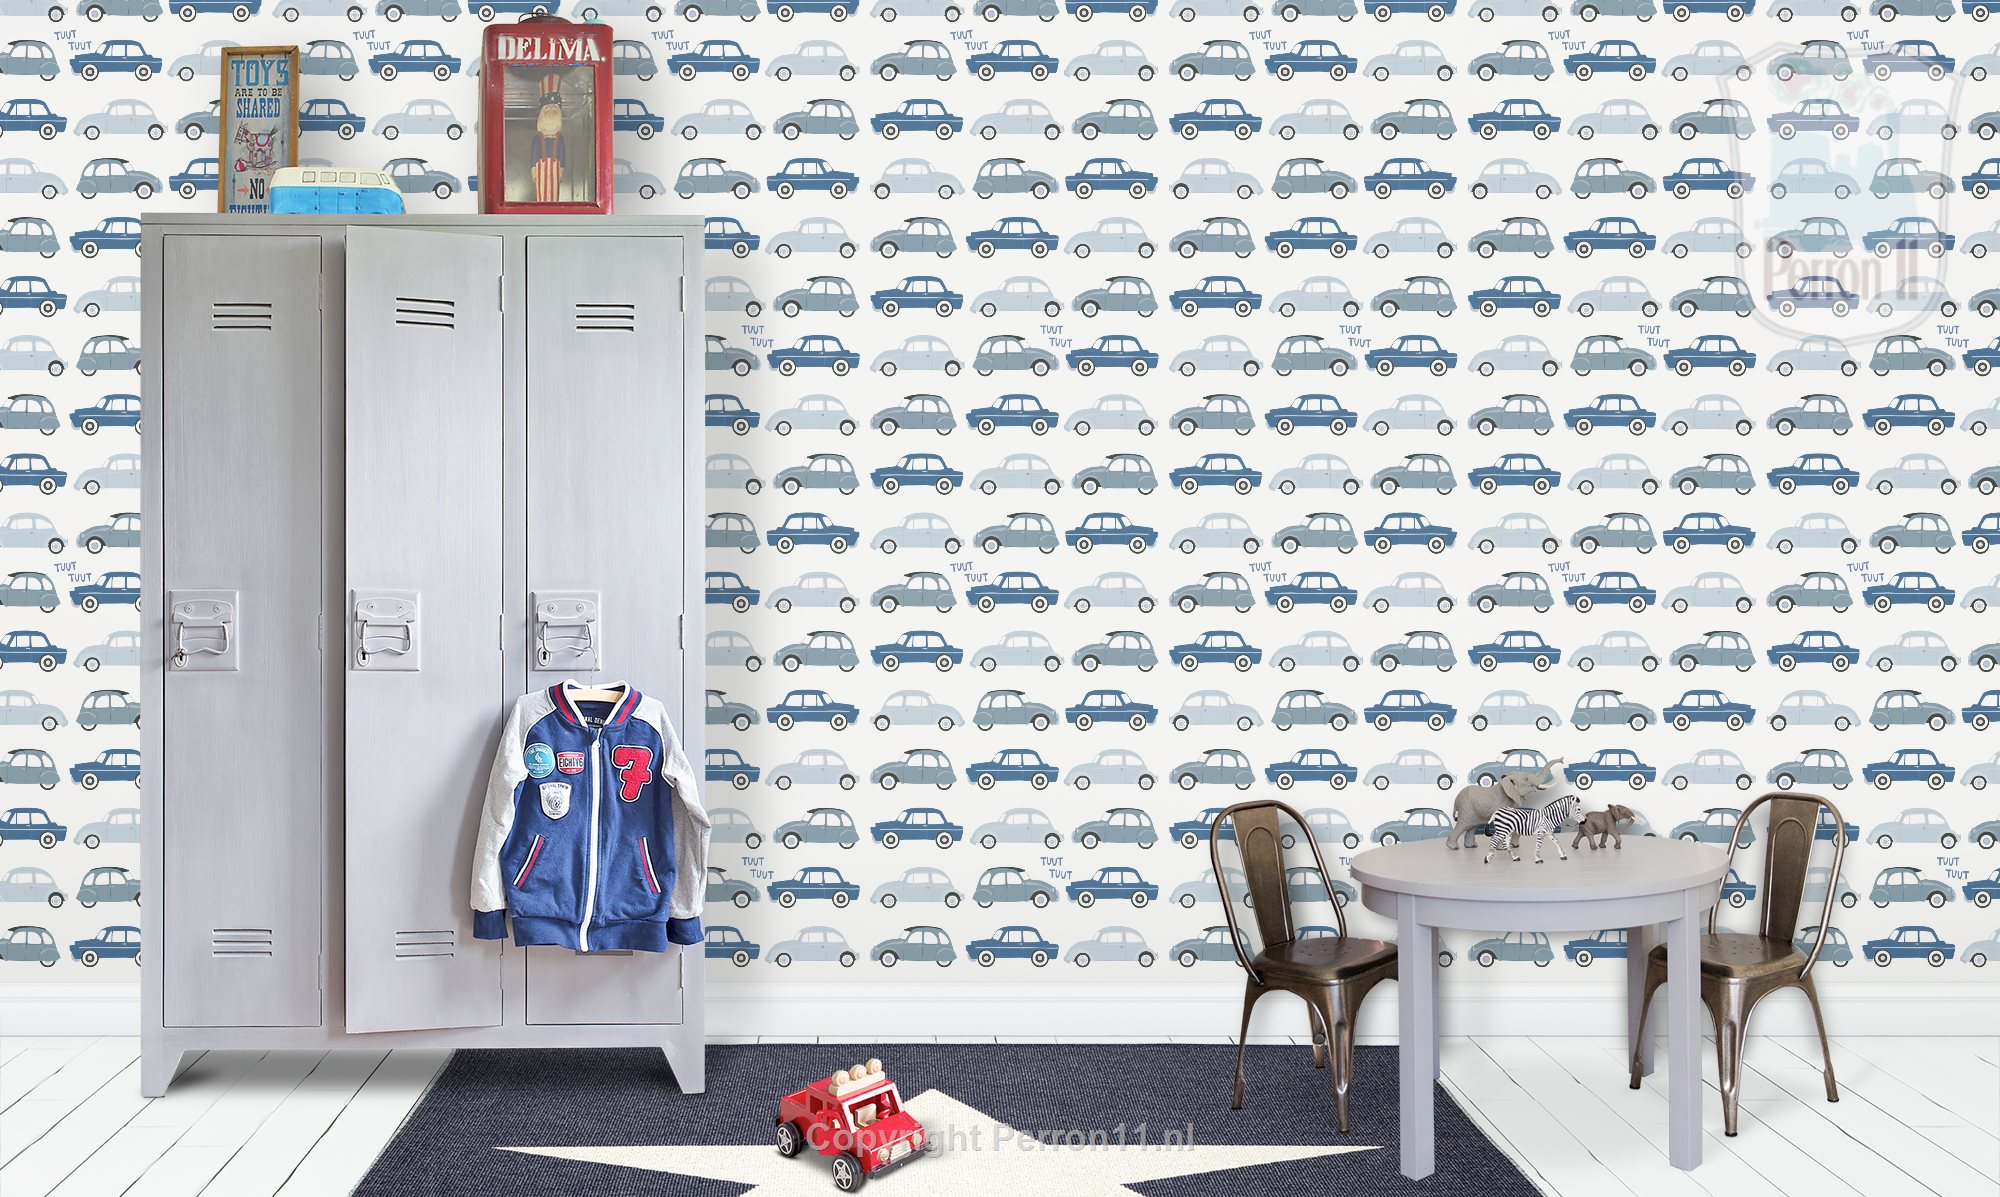 Tough boy's room with cars wallpaper in denim blue from Perron 11 on the wall